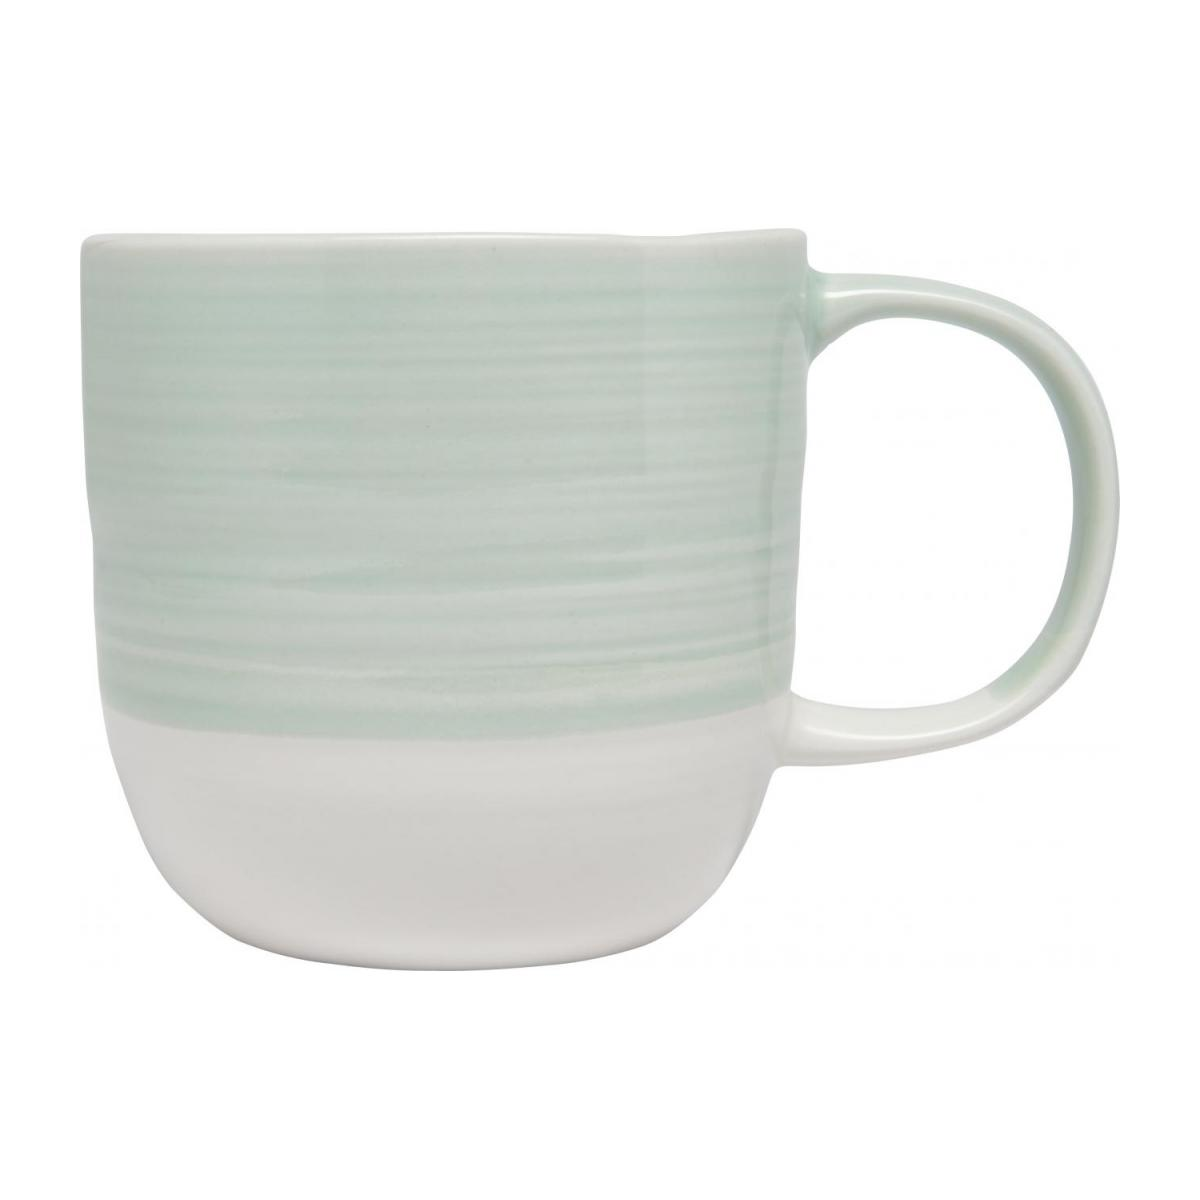 Mug made of porcelain celadon n°3